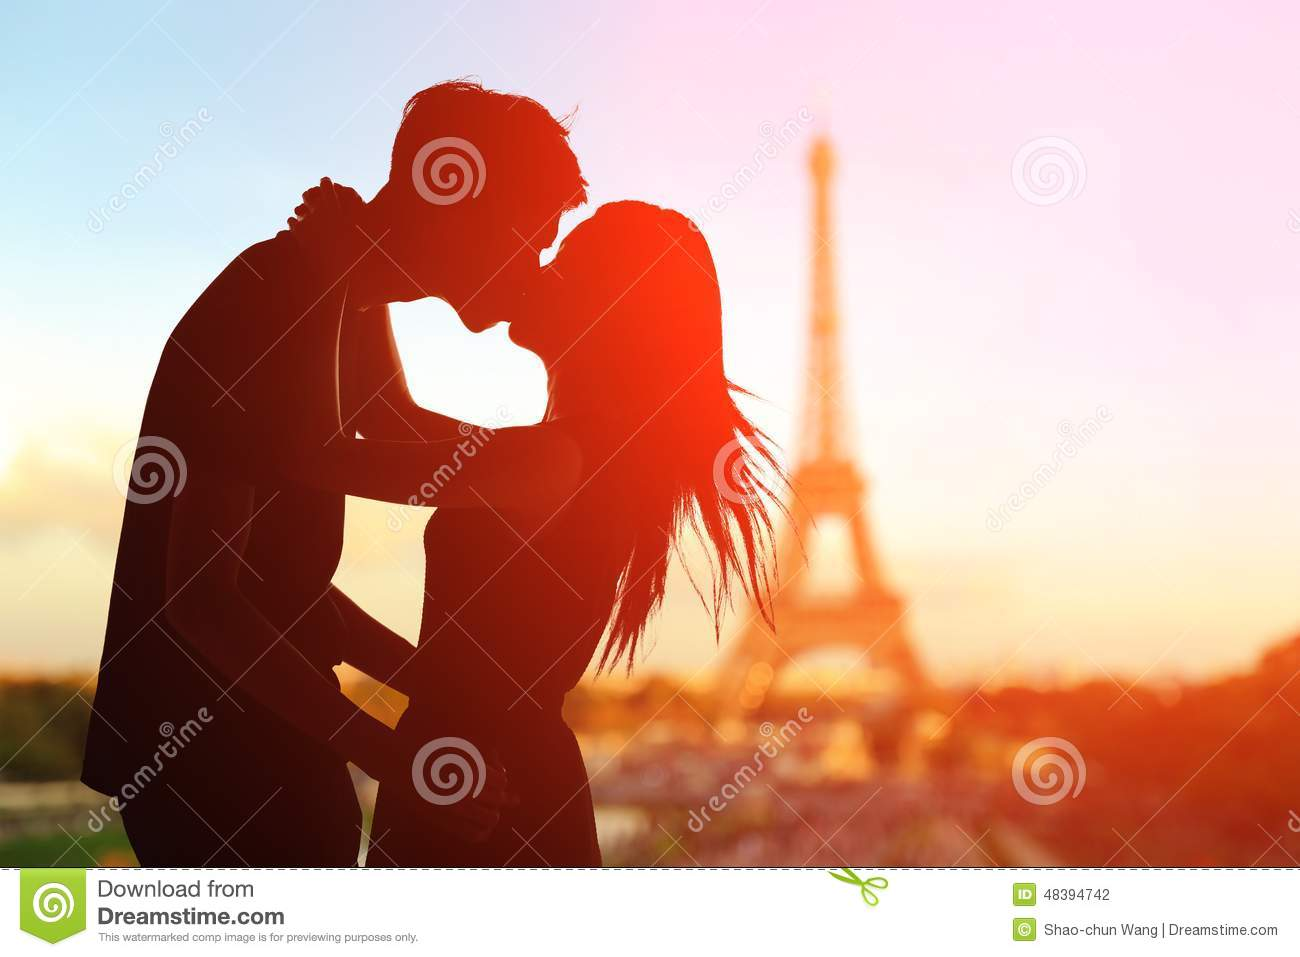 amor lover dating Pheramor is a renowned online dating platform in houston, tx that uses science and technology to help you find better, quality dates get started on app store and google play for free.